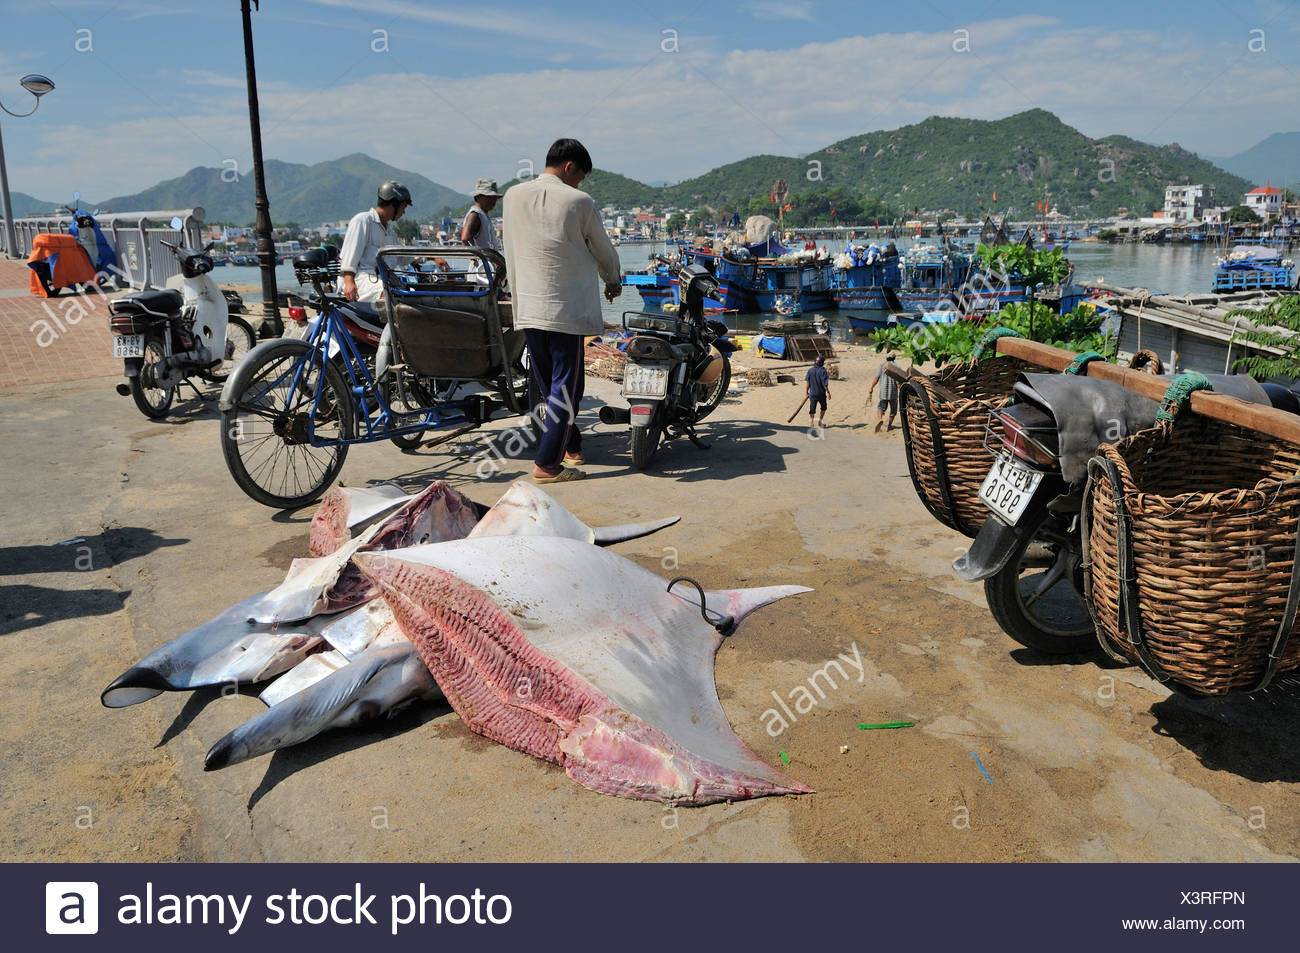 Giant stingray divided into parts waiting for transport, Vietnam, Southeast Asia - Stock Image